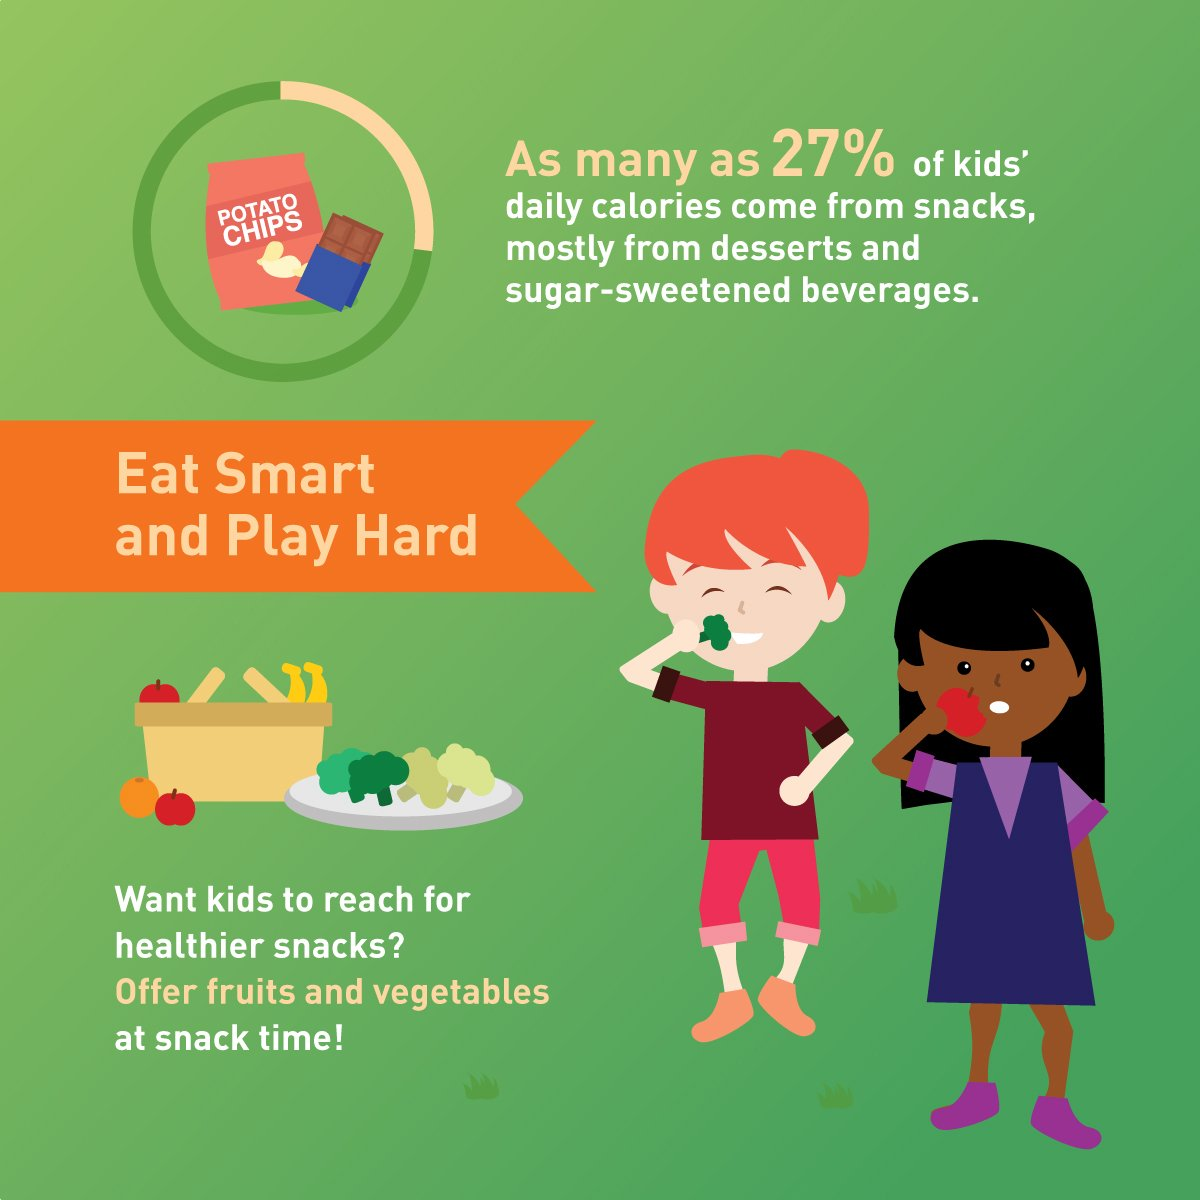 Snack smart. Choose fruits and veggies at snack time. https://t.co/7vgYufu0Q3